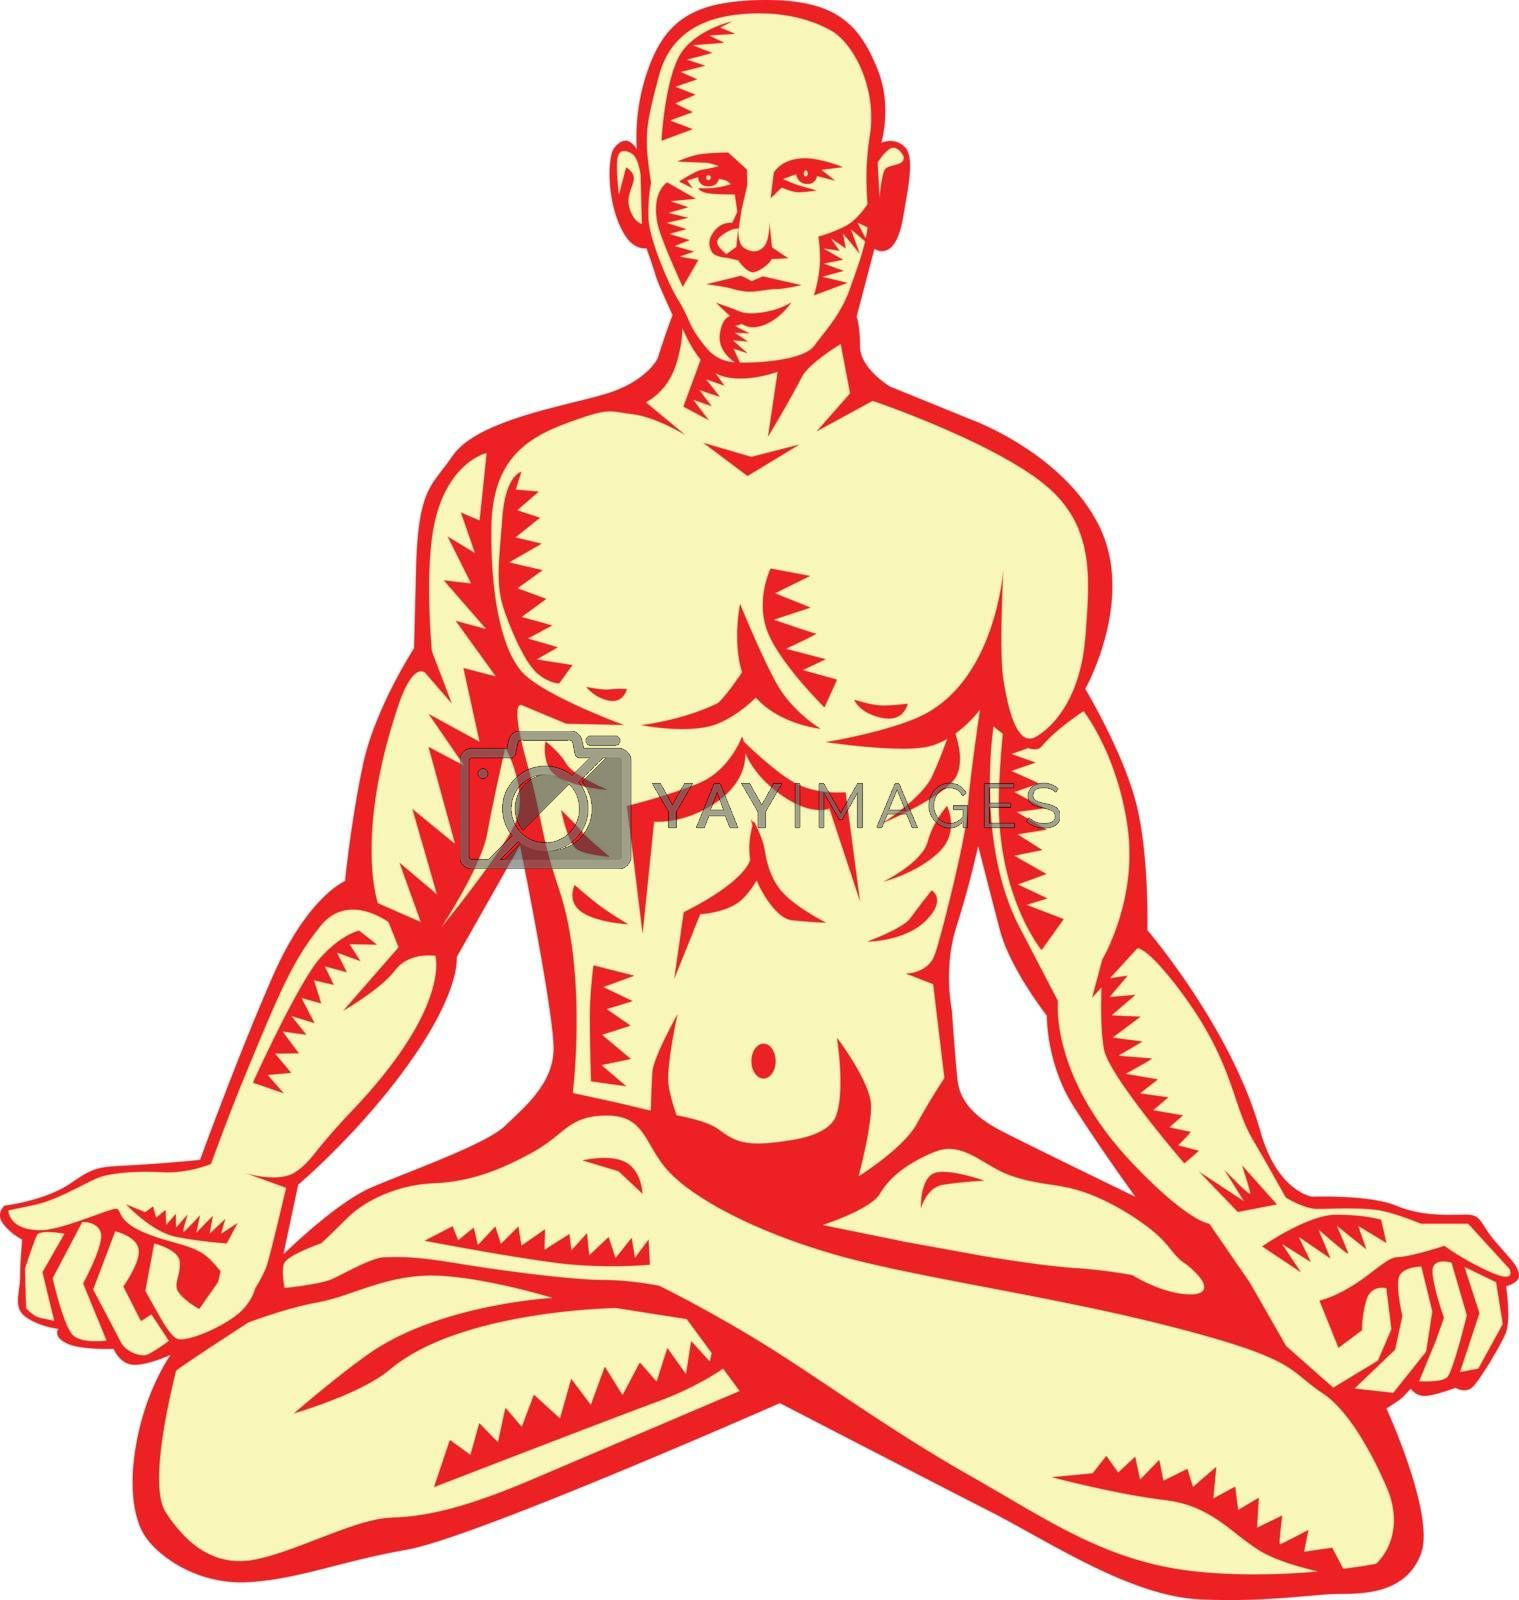 Illustration of a man medidating in lotus position cross-legged sitting asana in which the feet are placed on the opposing thighs viewed from front set on isolated white background done in retro woodcut style.